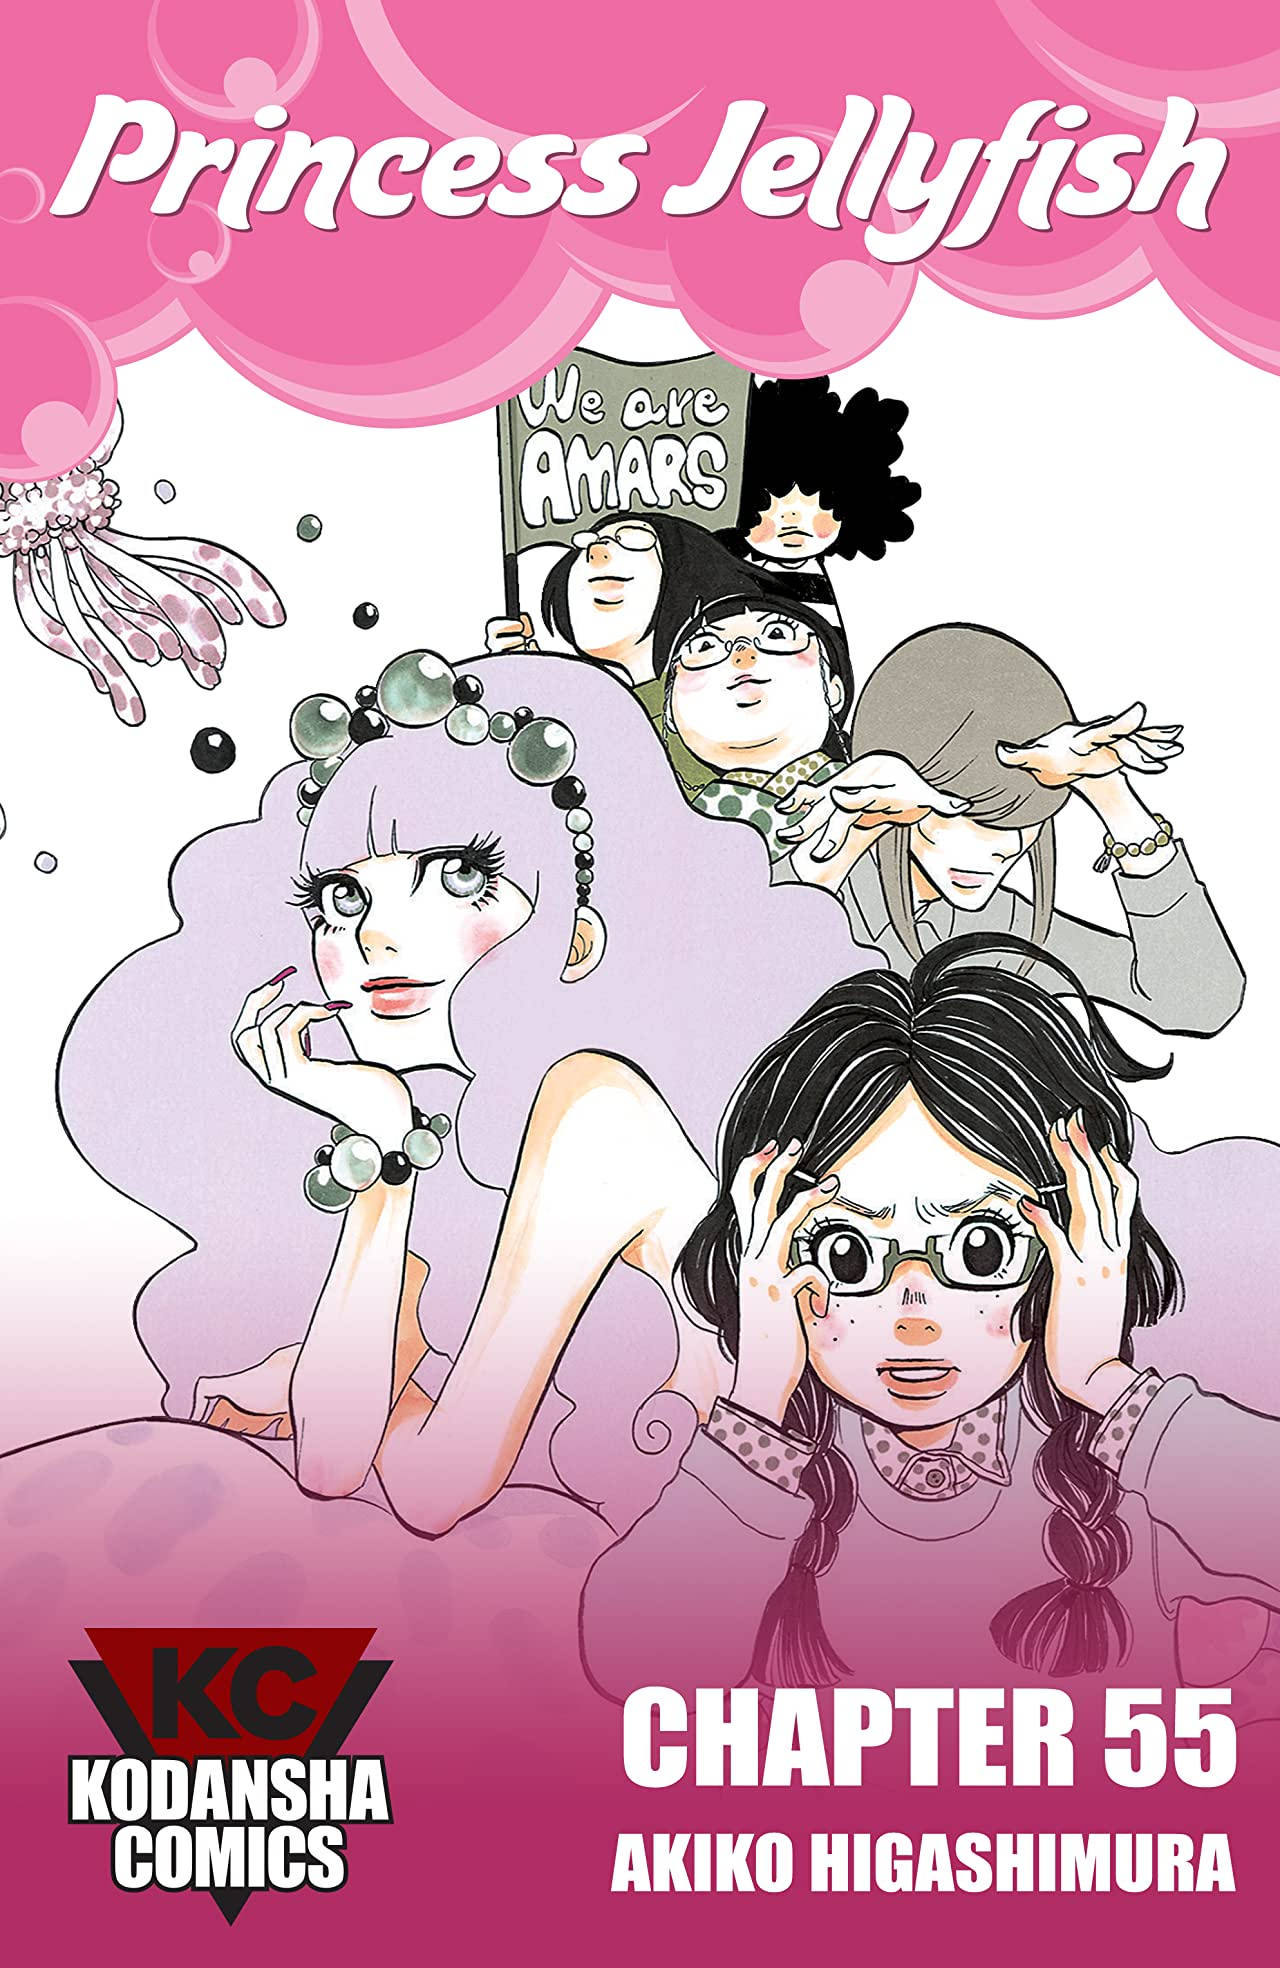 Princess Jellyfish #55